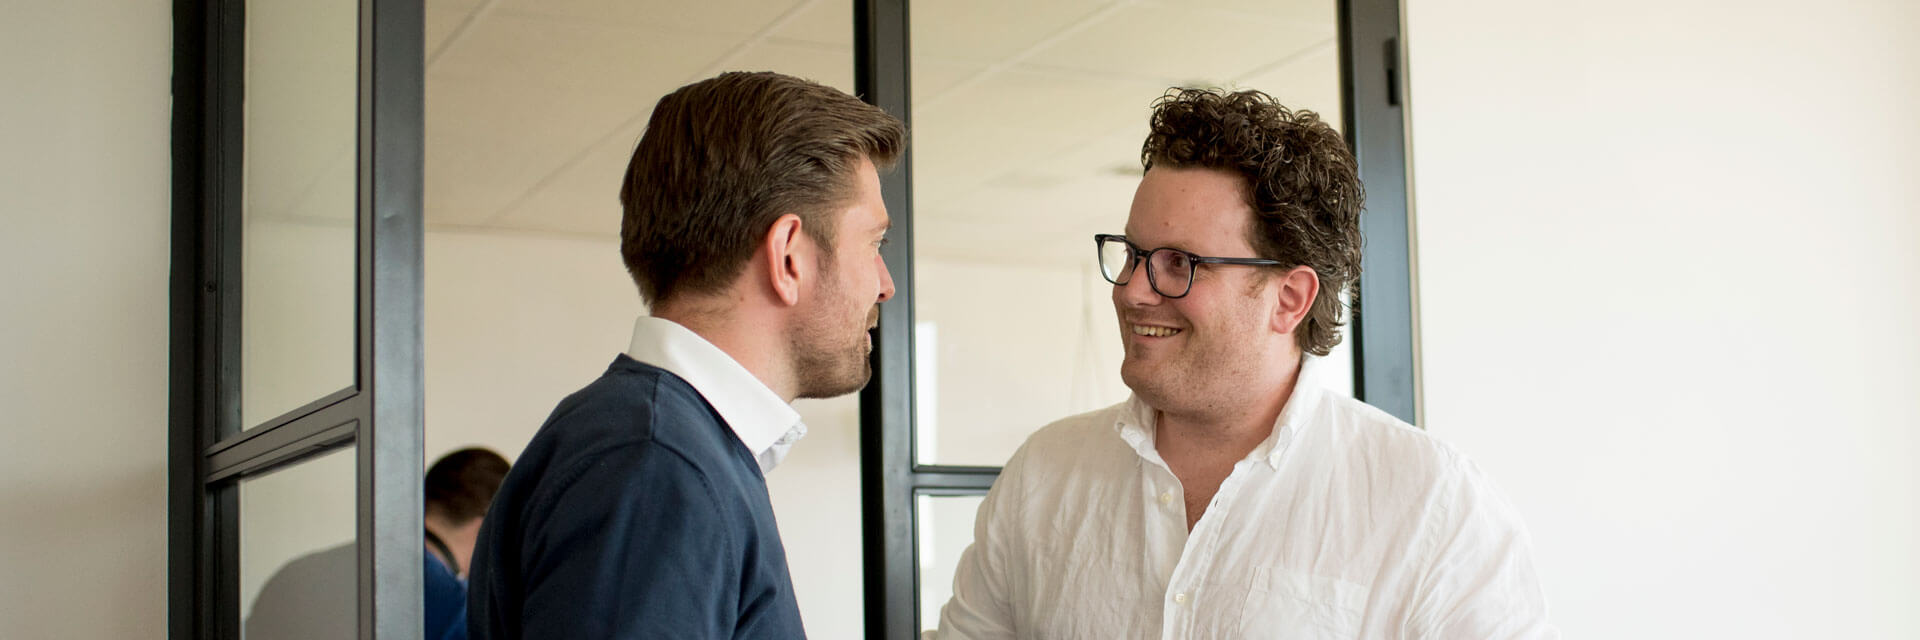 Tom and Lukas discuss the best strategy to help our customers.